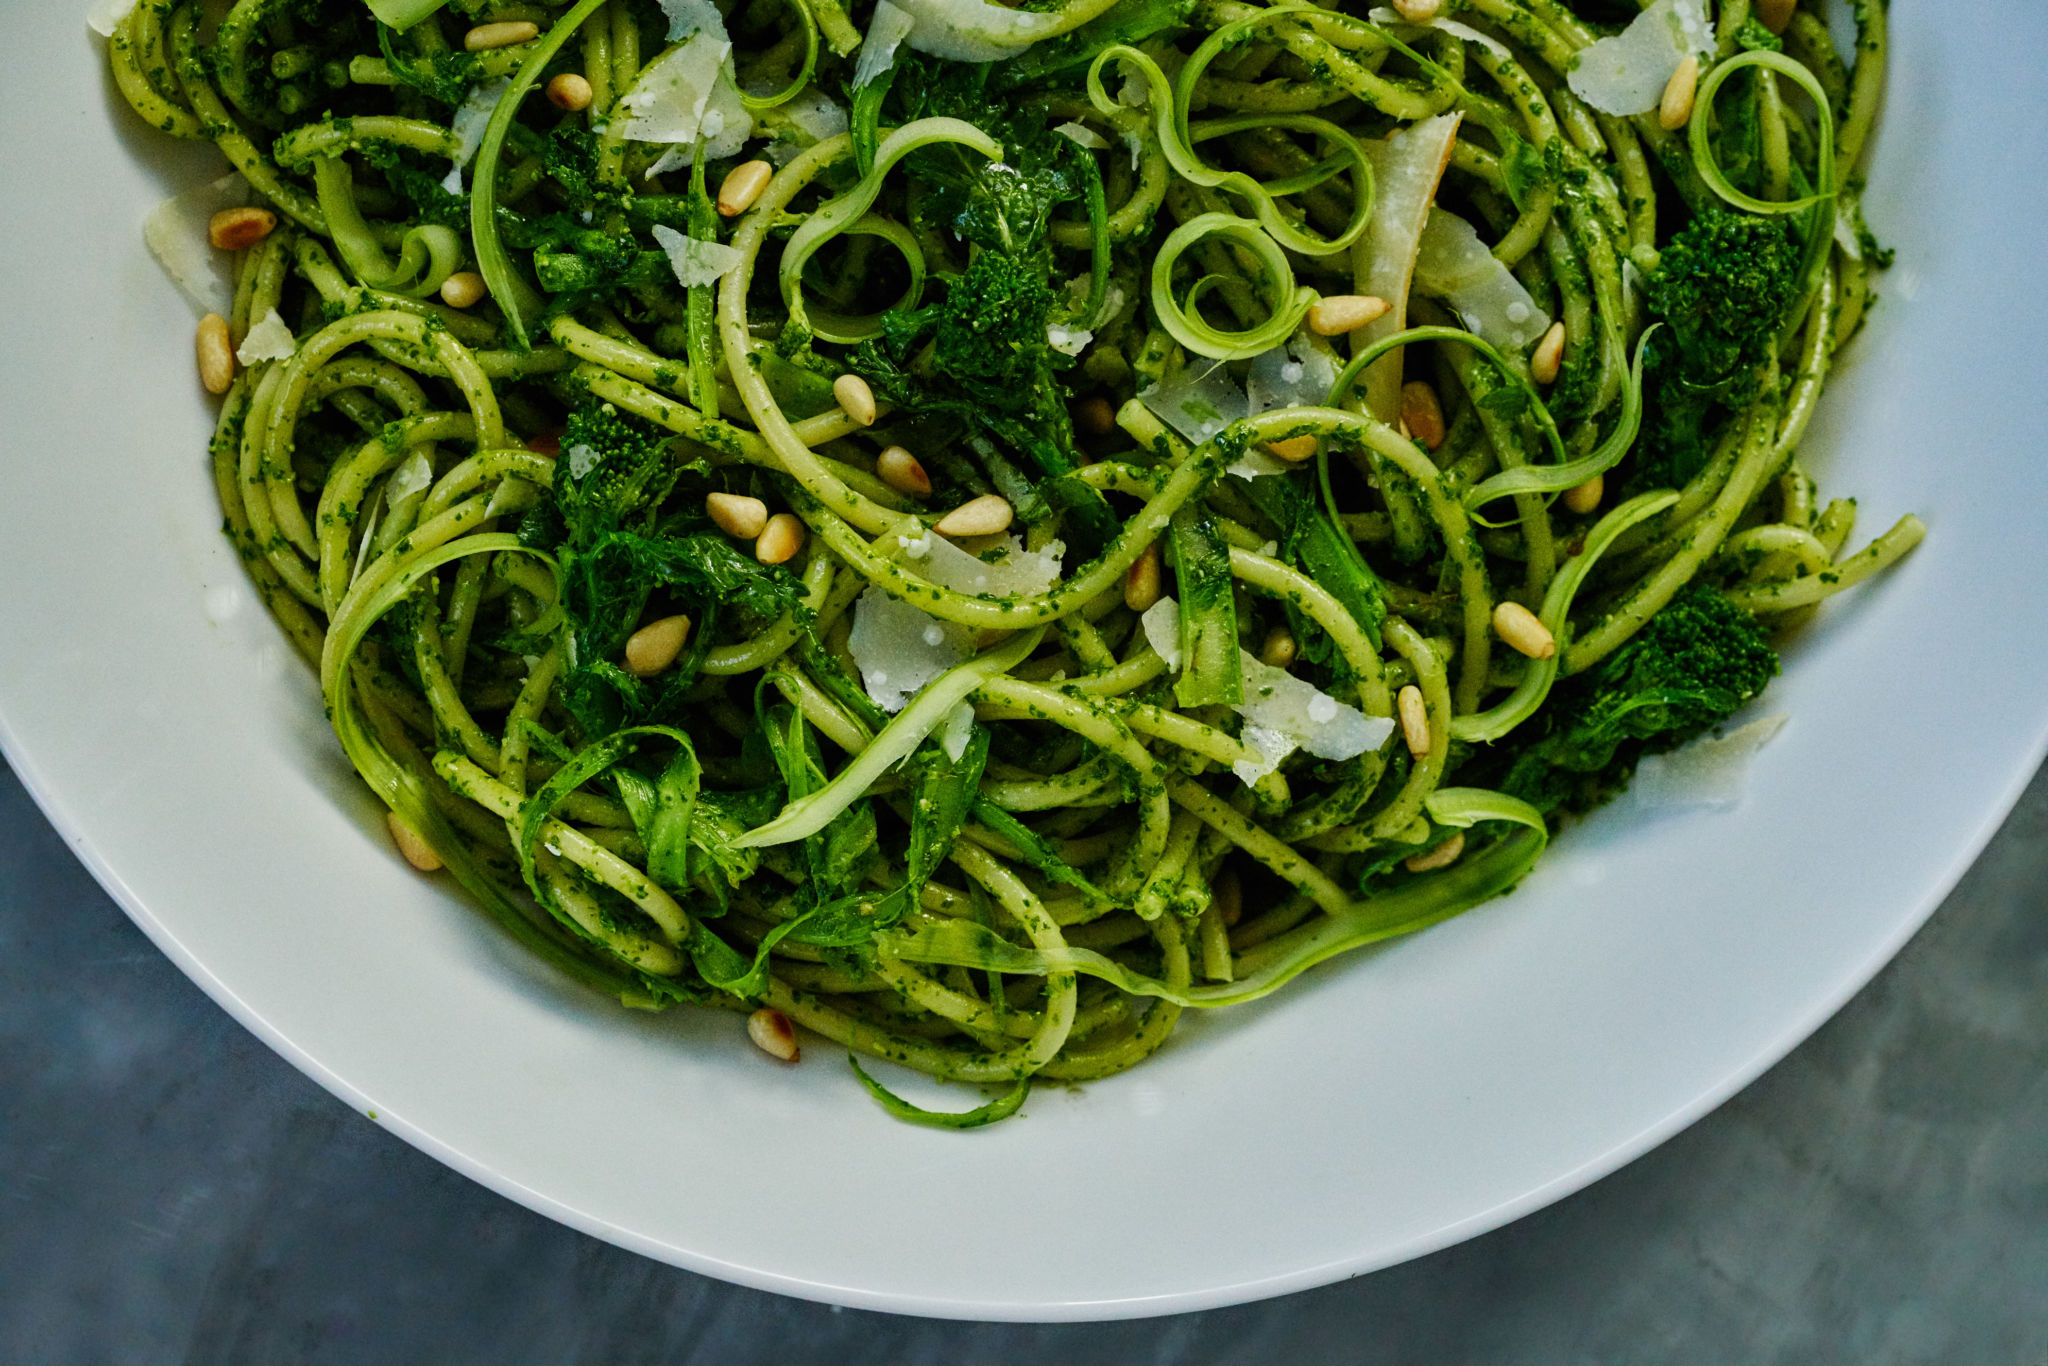 Broccoli Rabe Bucatini with Broccoli Rabe Pesto